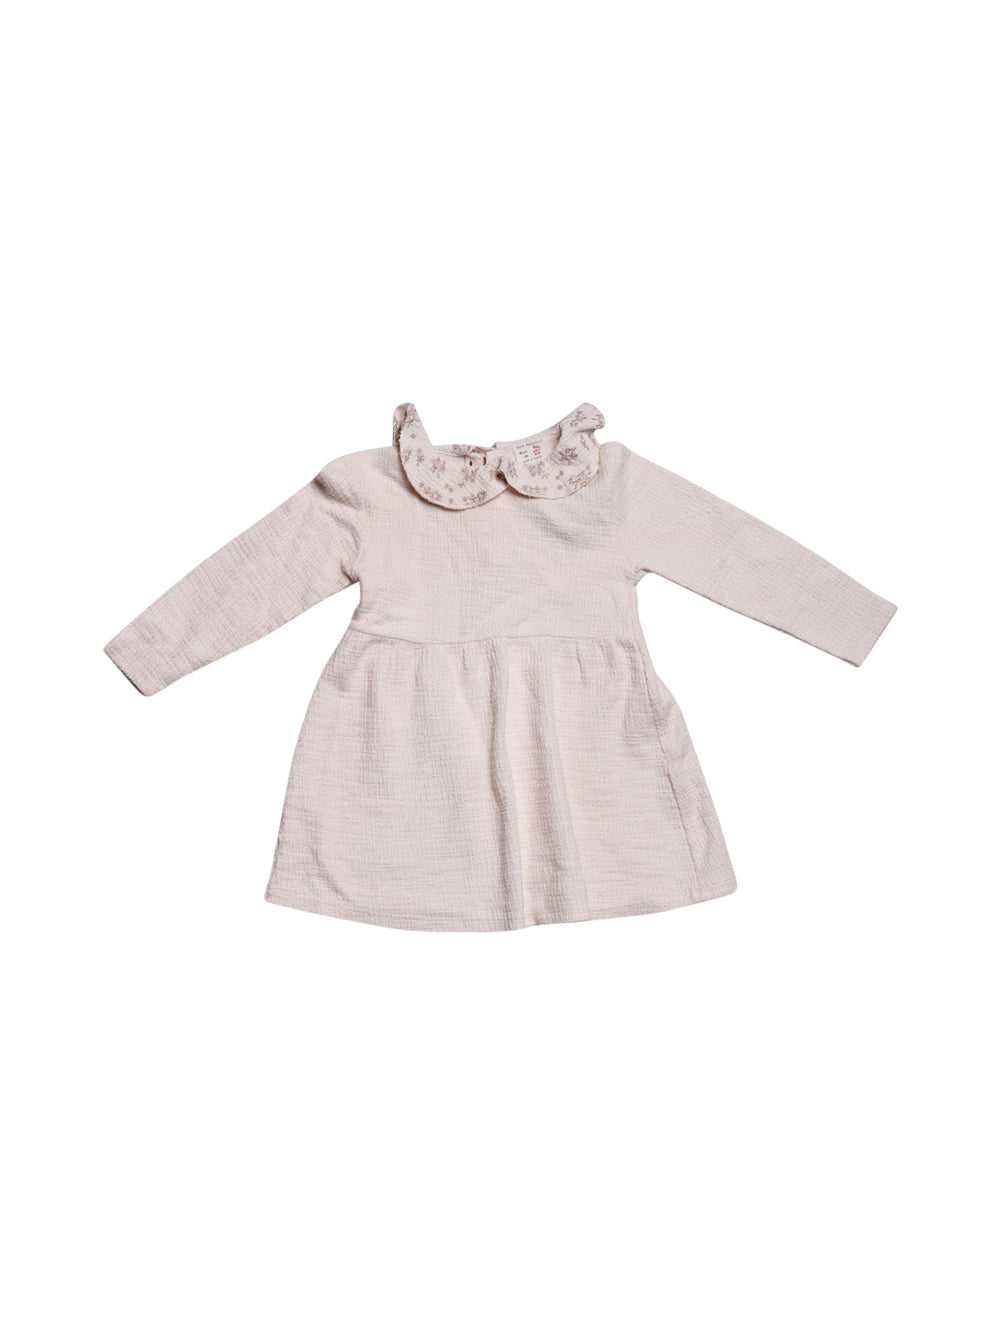 Front photo of Preloved Zara White Girl's dress - size 3-4 yrs